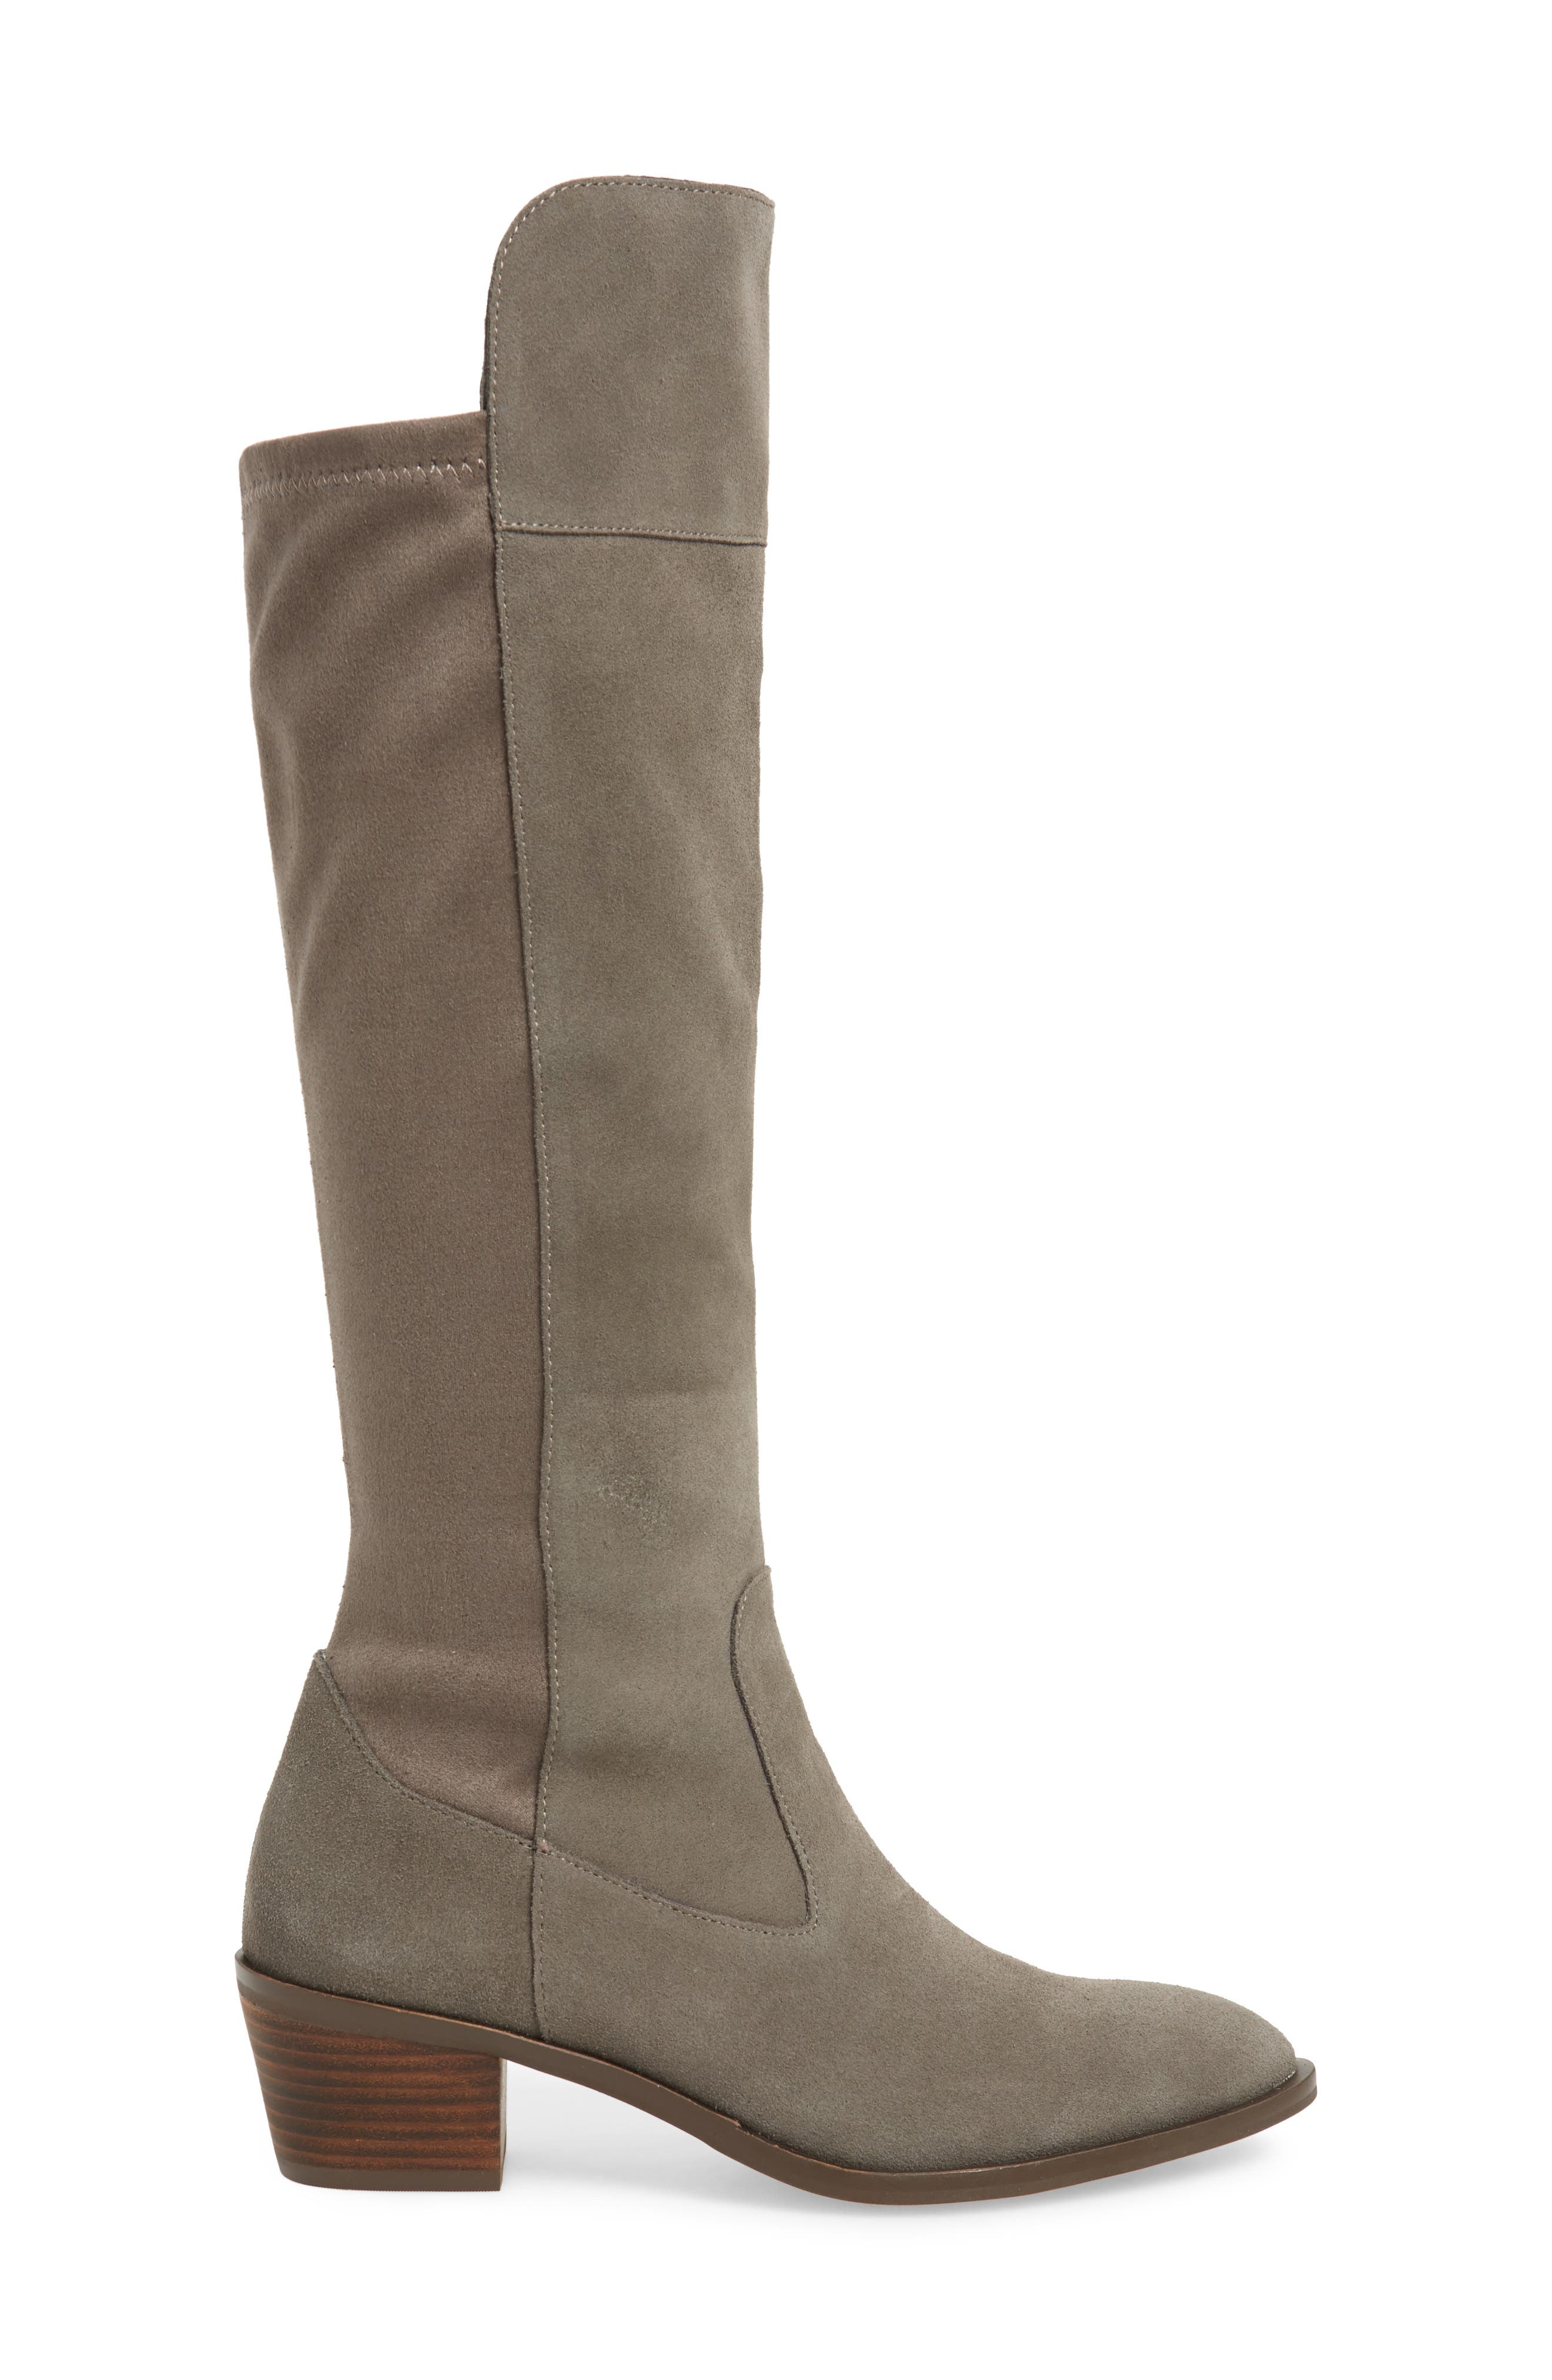 SOLE SOCIETY,                             Noamie Knee High Boot,                             Alternate thumbnail 3, color,                             LONDON RAIN SUEDE